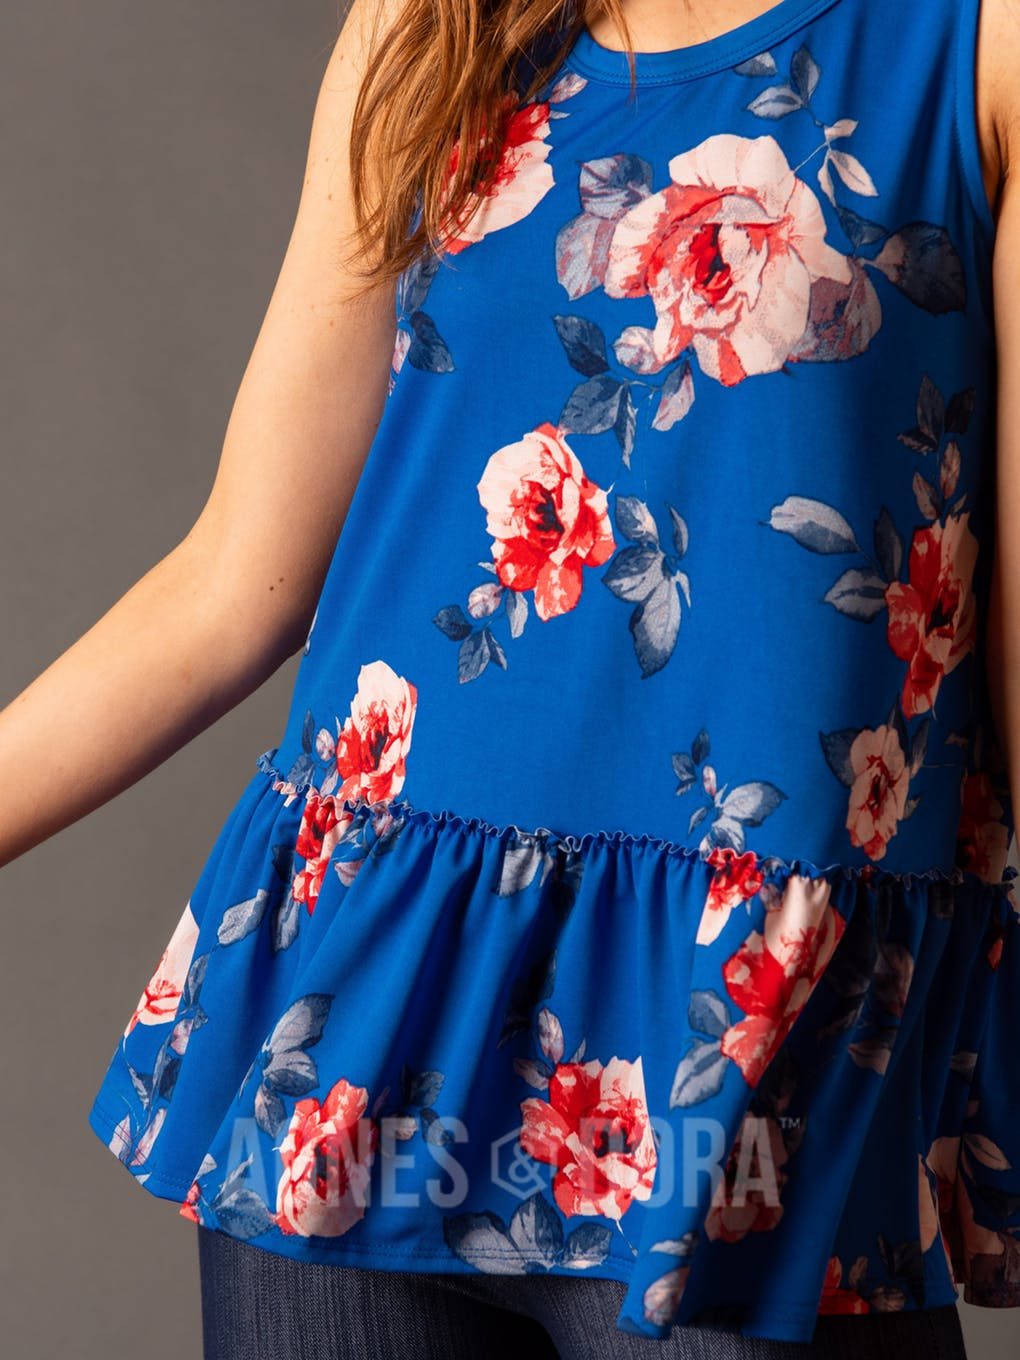 Agnes & Dora™ Relaxed Ruffle Tank Blue/Red Floral